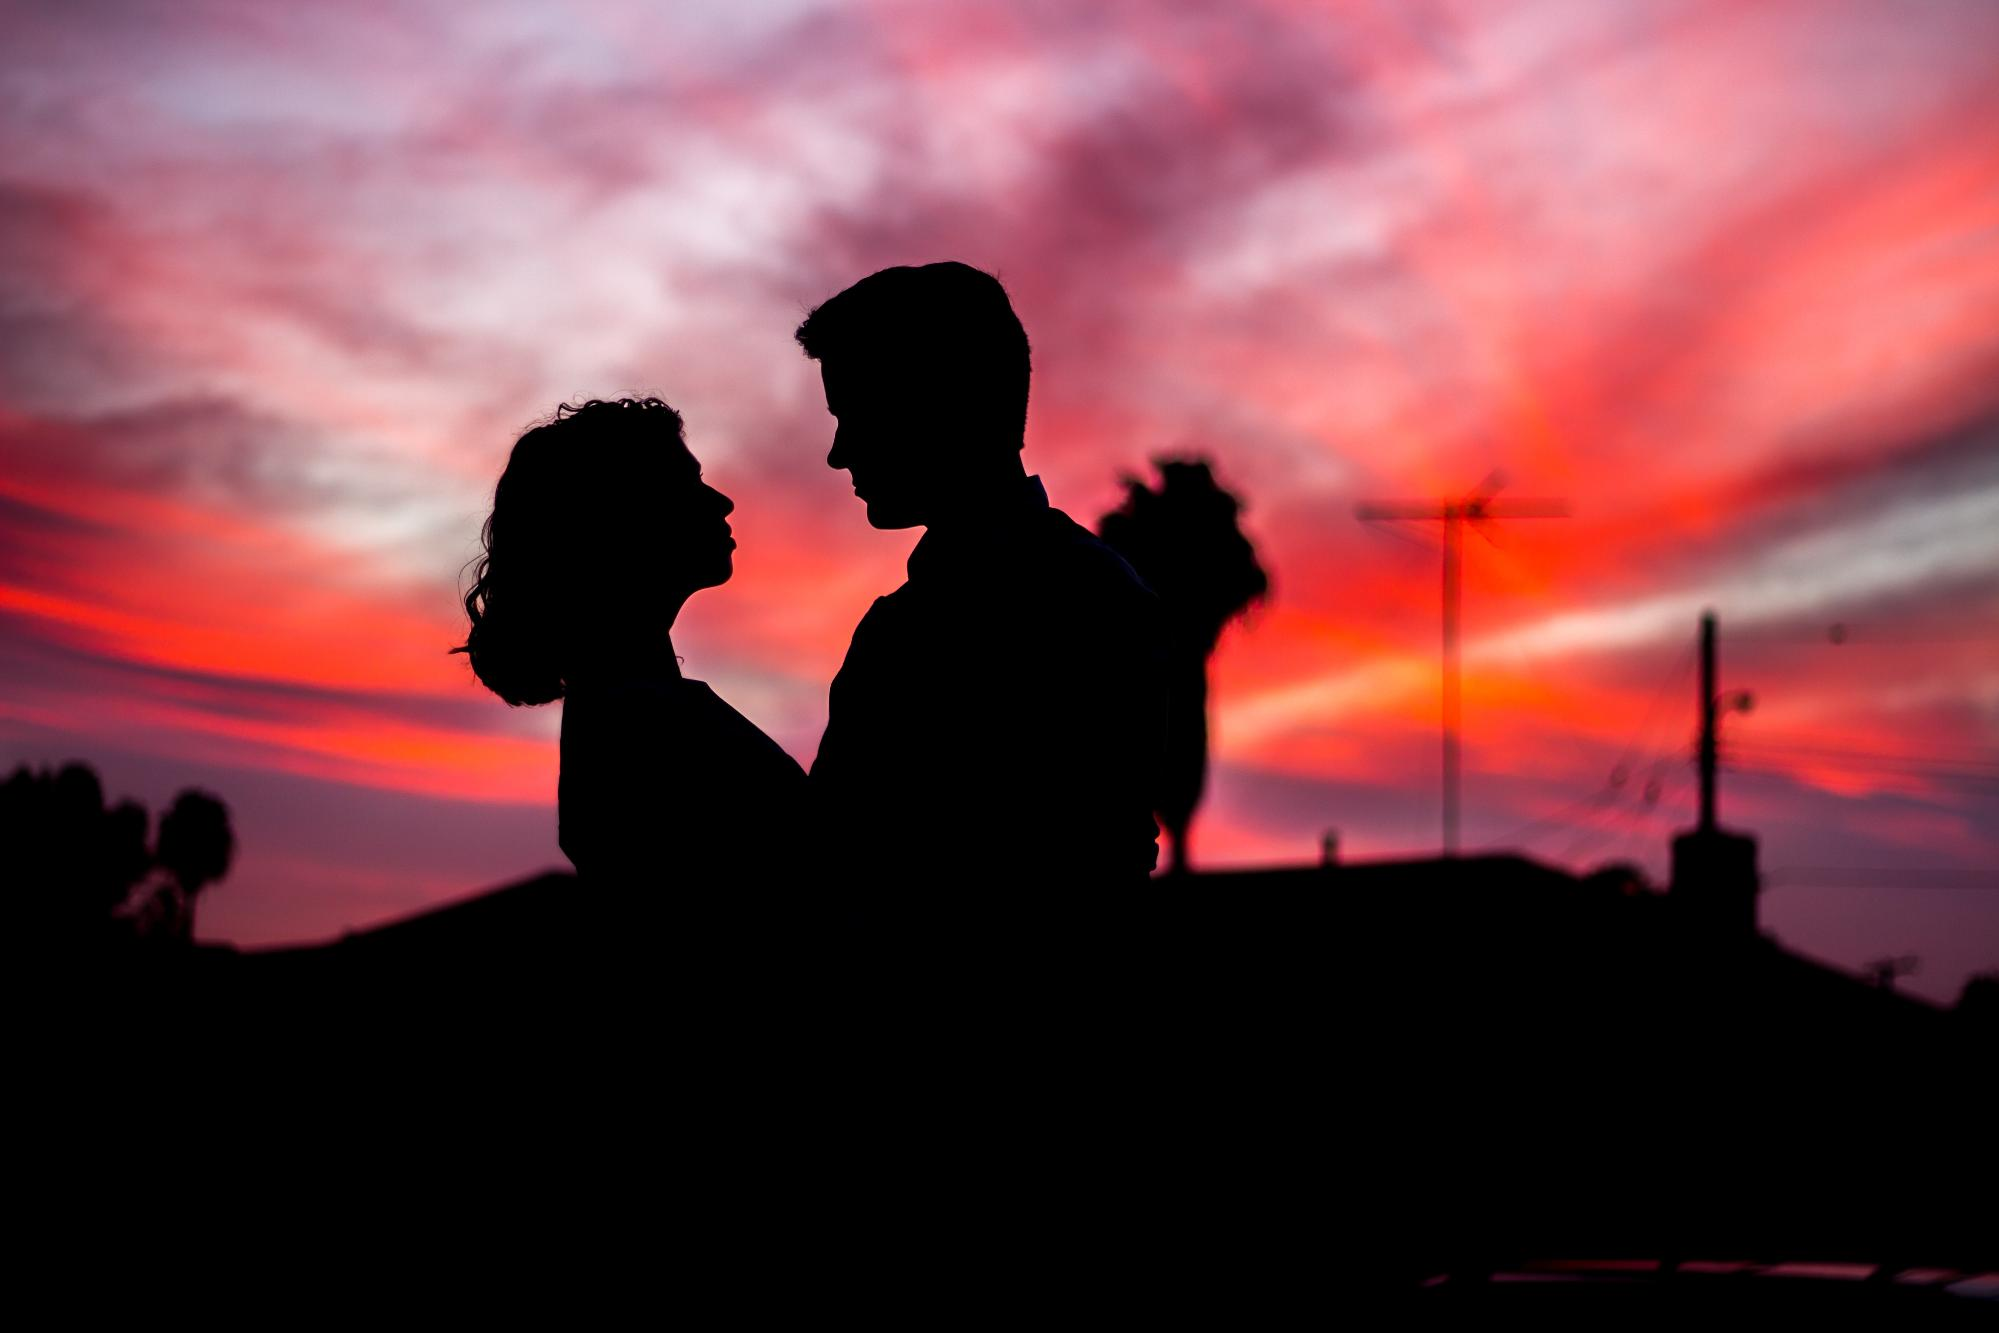 5 Relationship Tips to Get Your Marriage On Track